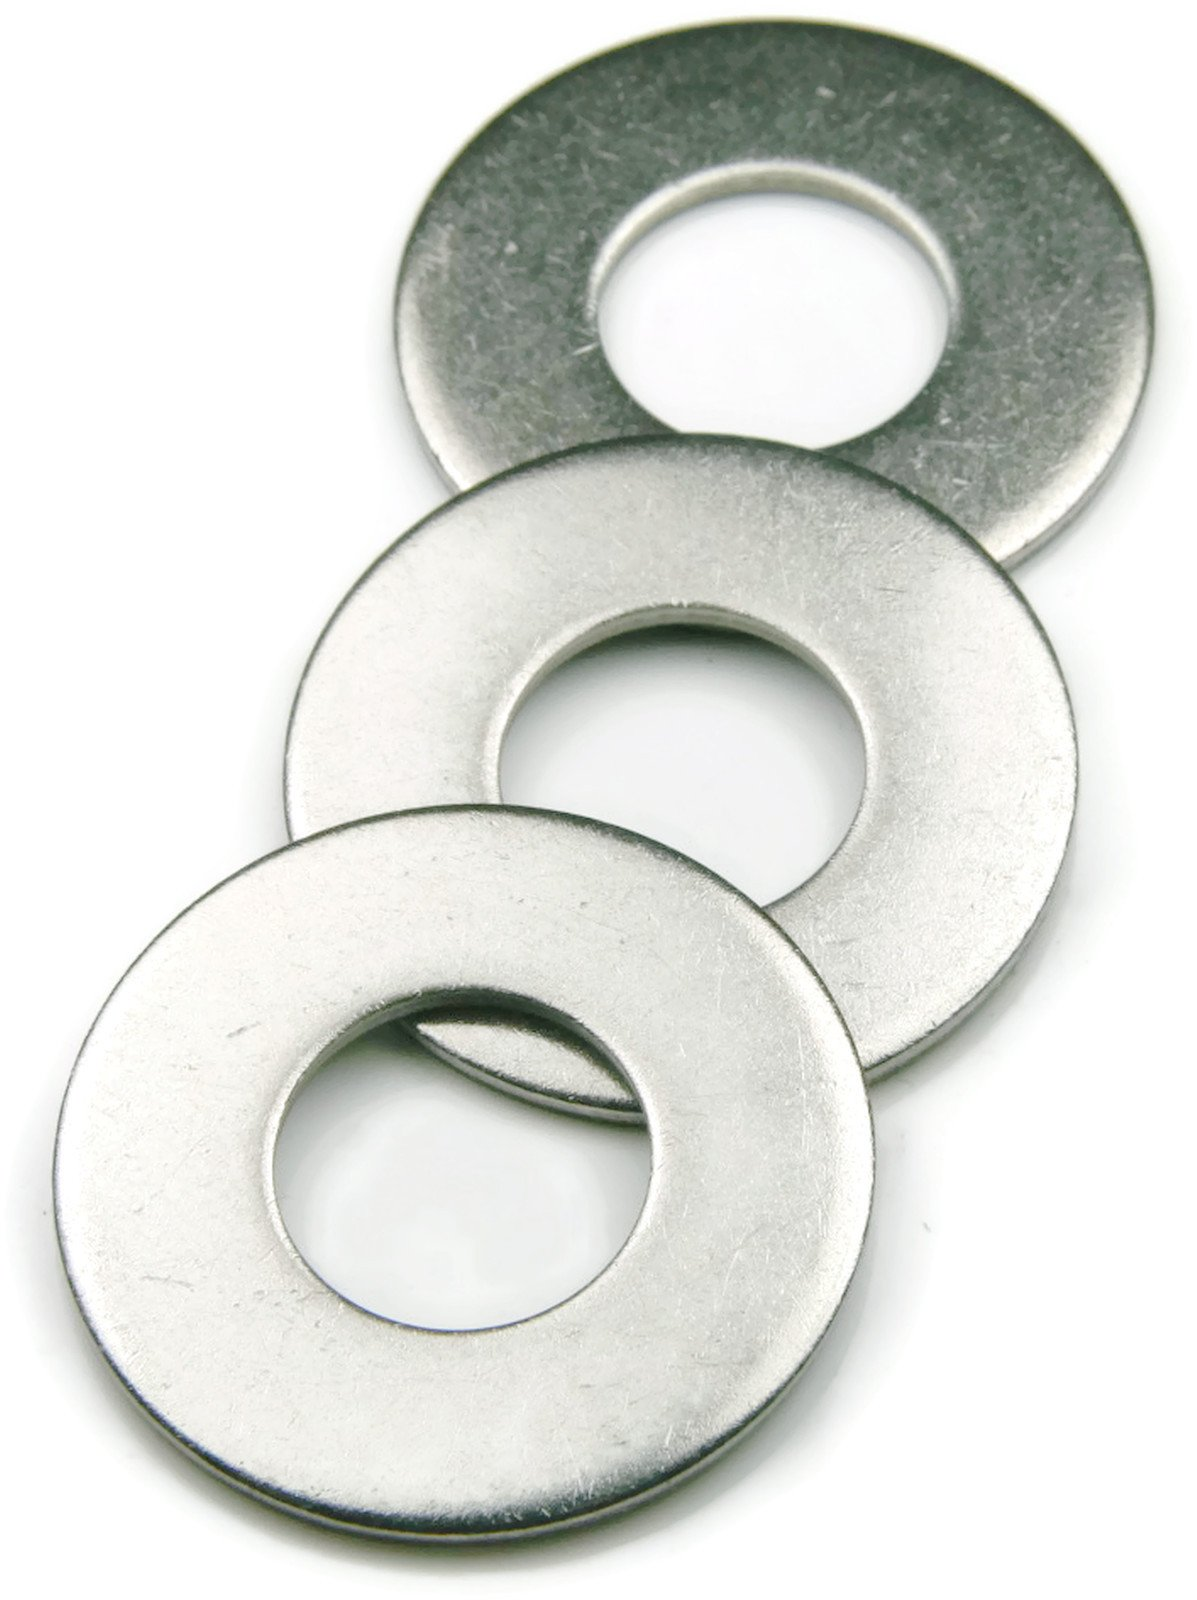 Flat Washers 304 Stainless Steel - 1'' (1.062 ID x 2 OD x .125 Thick) Qty-25